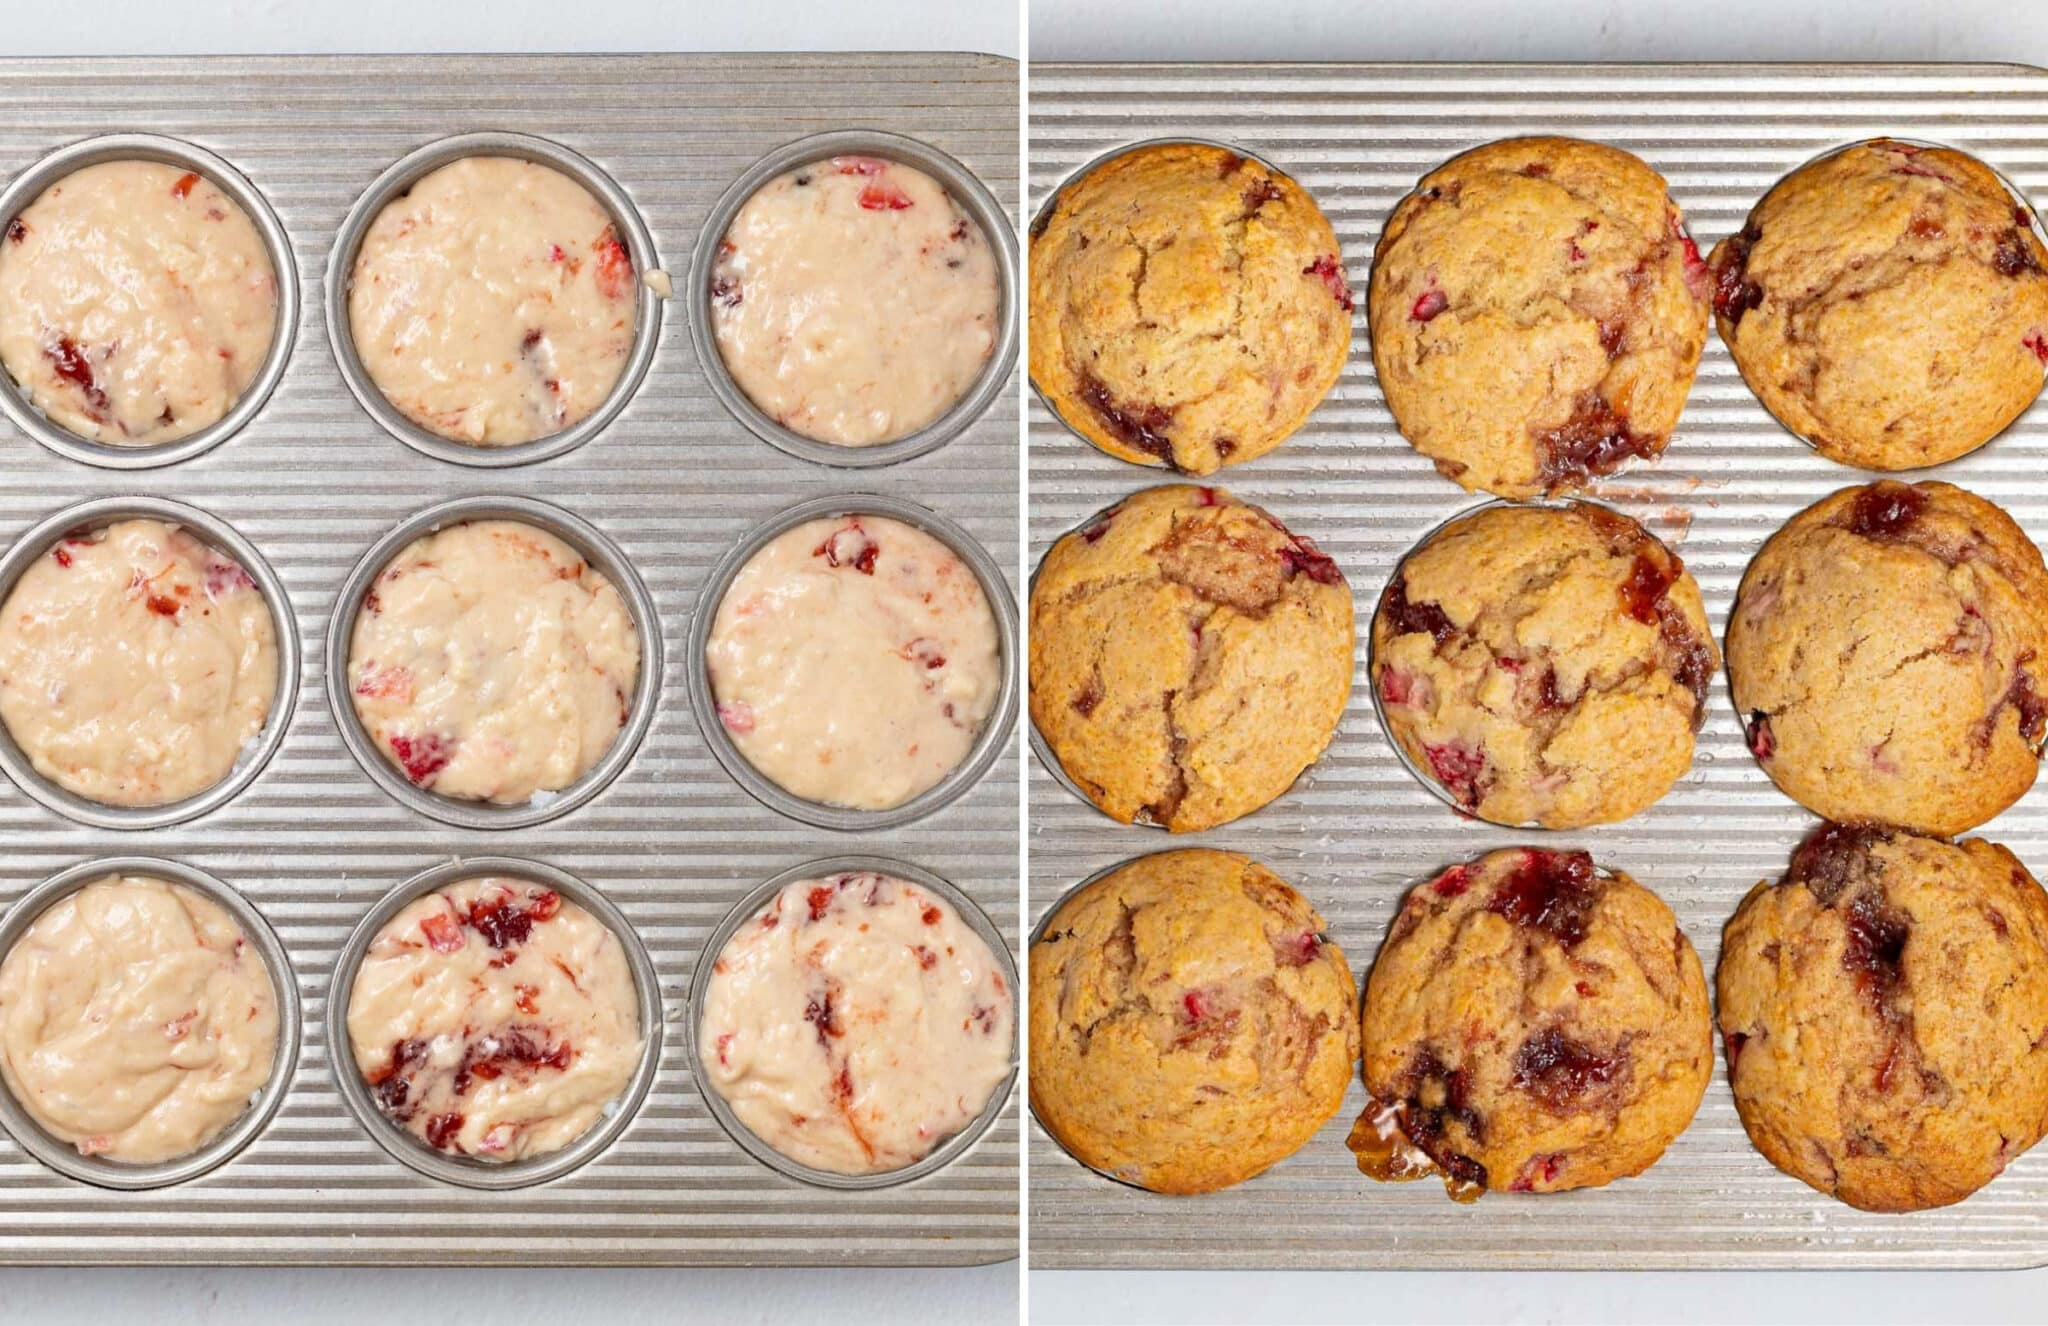 vegan strawberry muffins before baking and after baking